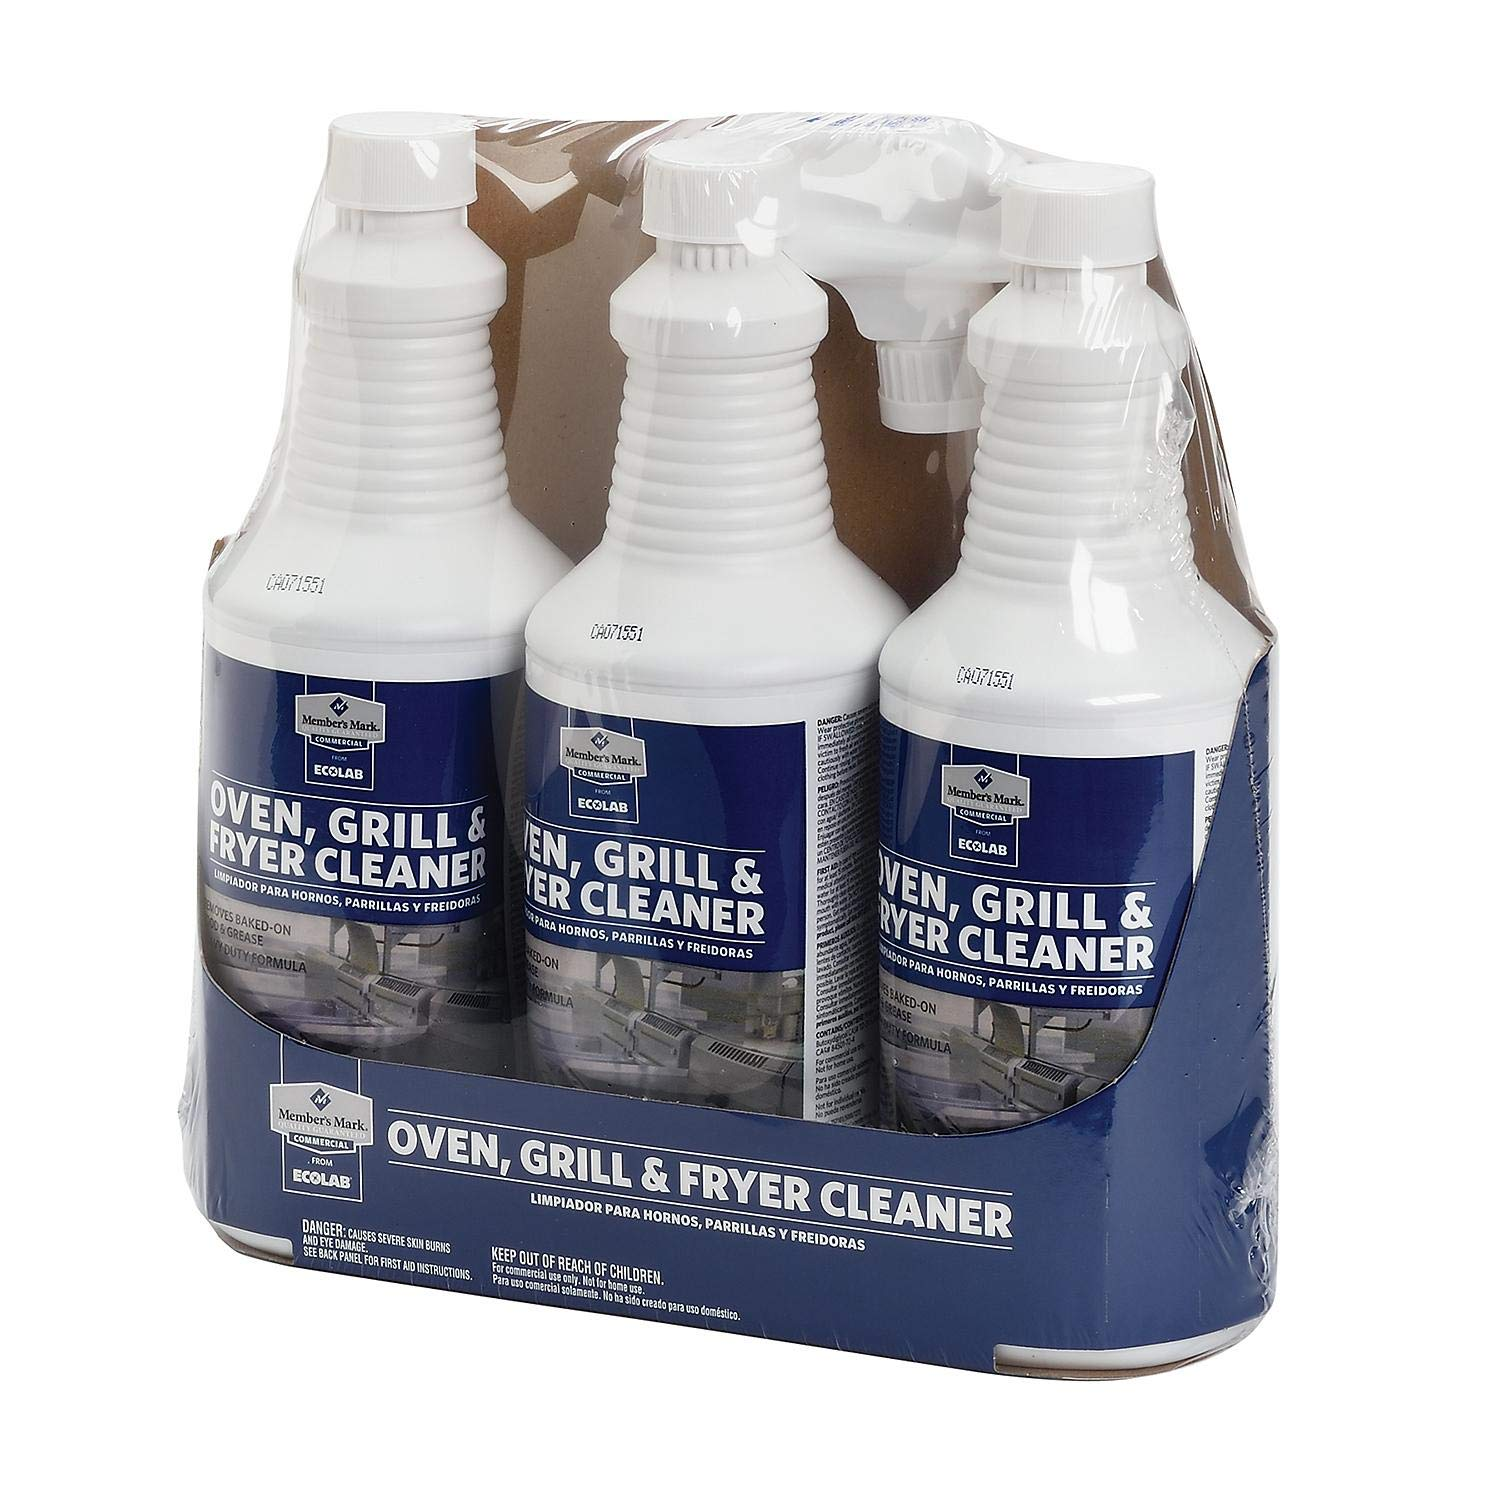 An Item of Member's Mark Commerical Oven, Grill and Fryer Cleaner by Ecolab (32 oz, 3 pk.) - Pack of 1